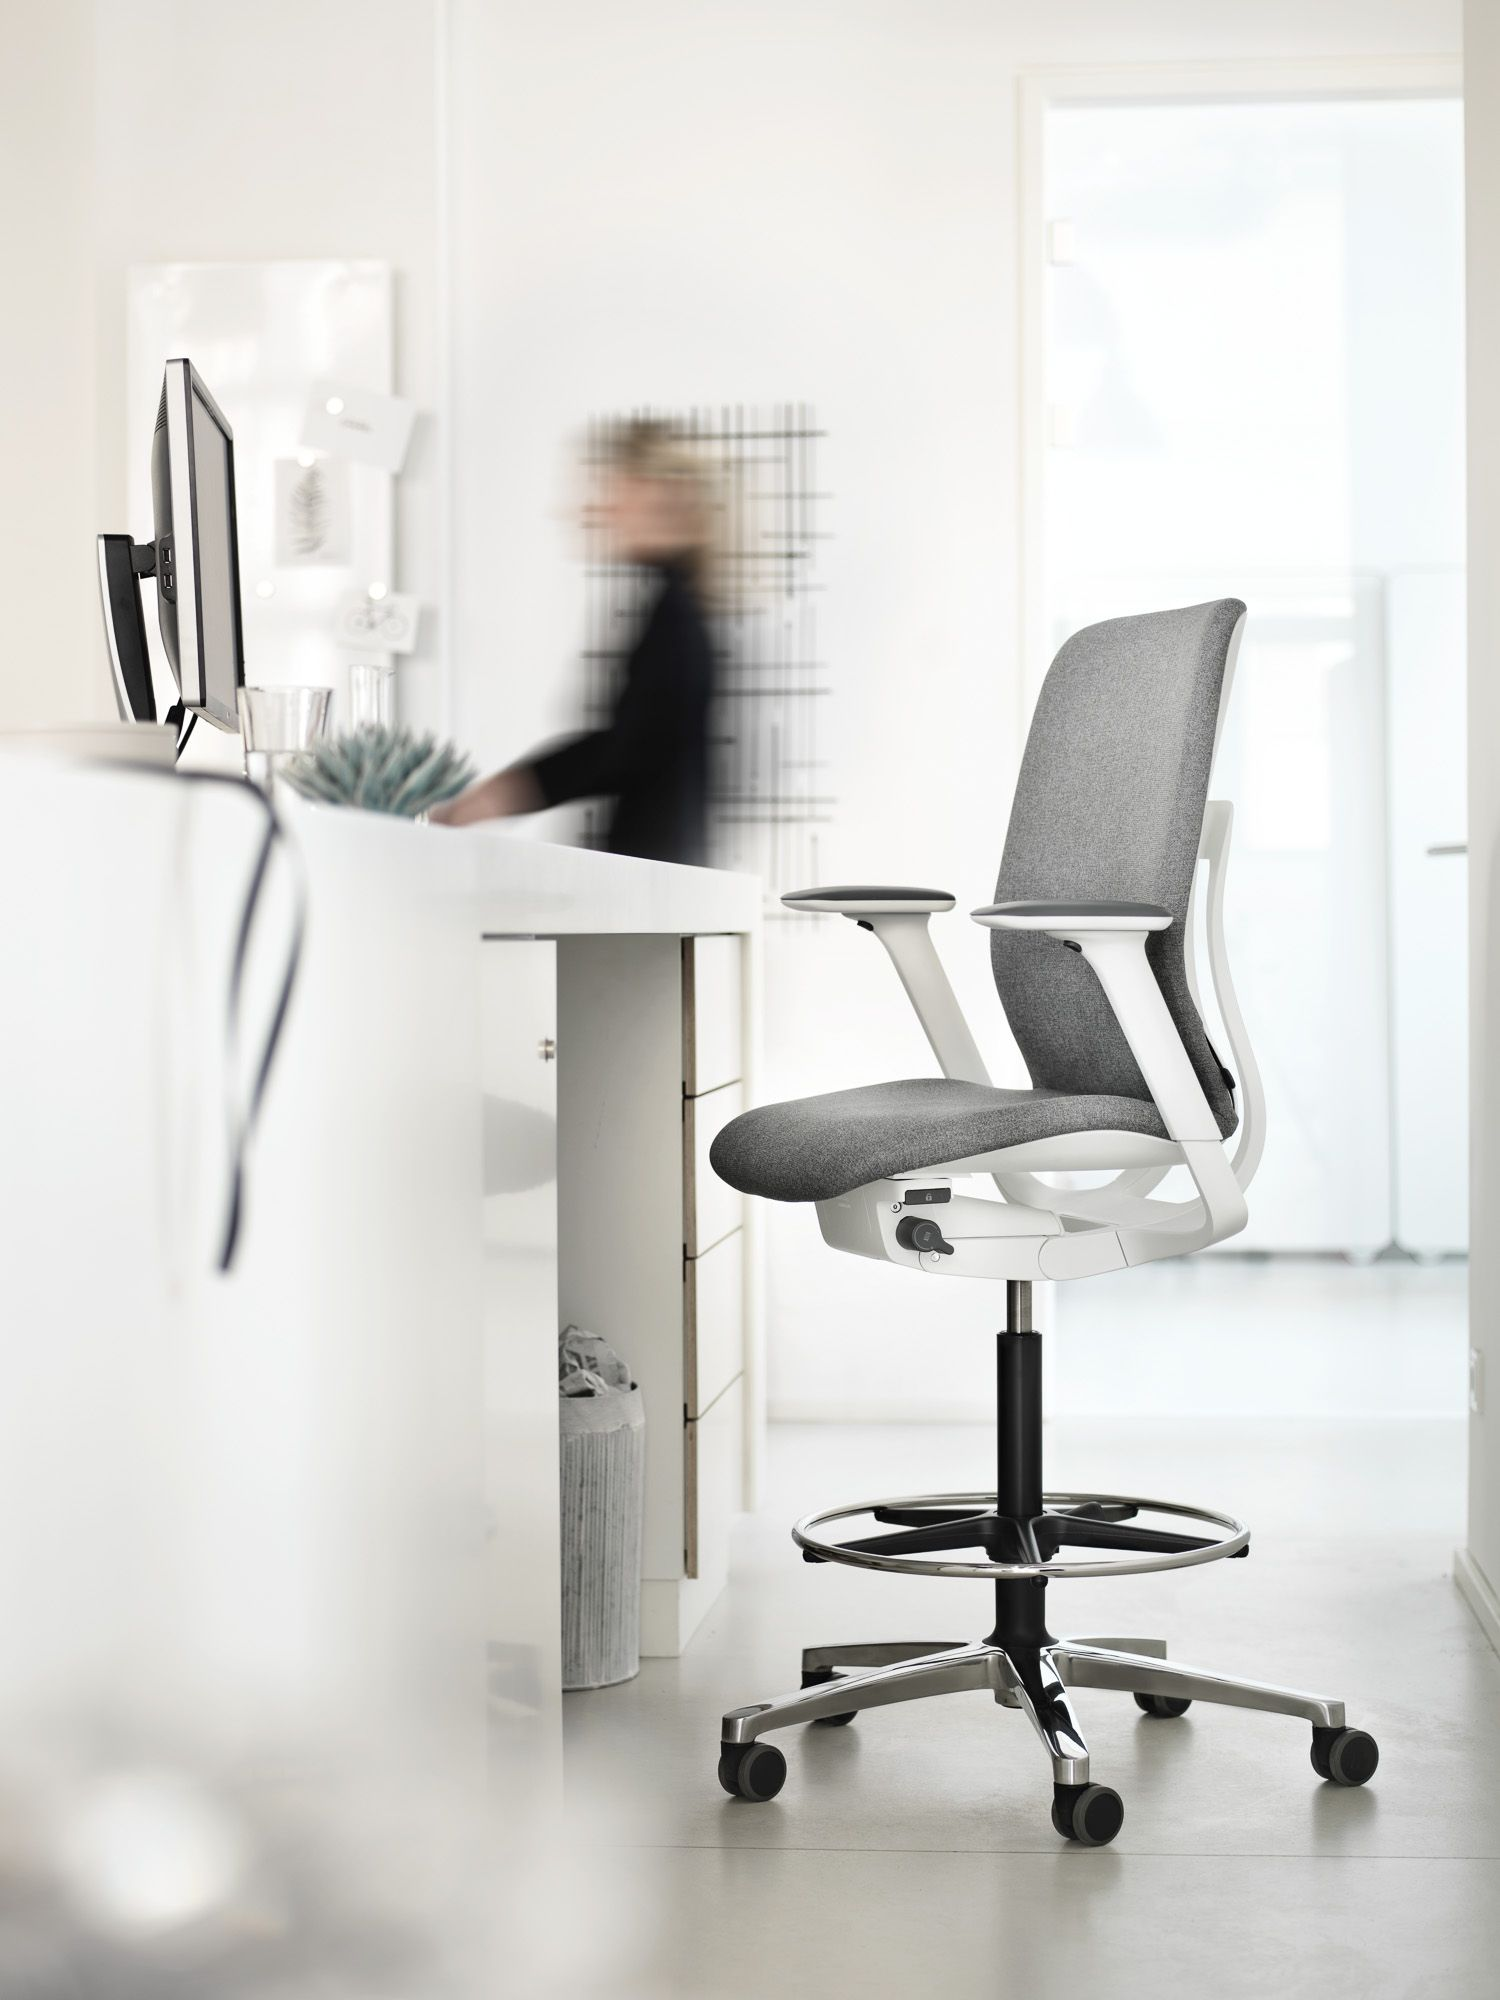 In addition to office chair models with normal height